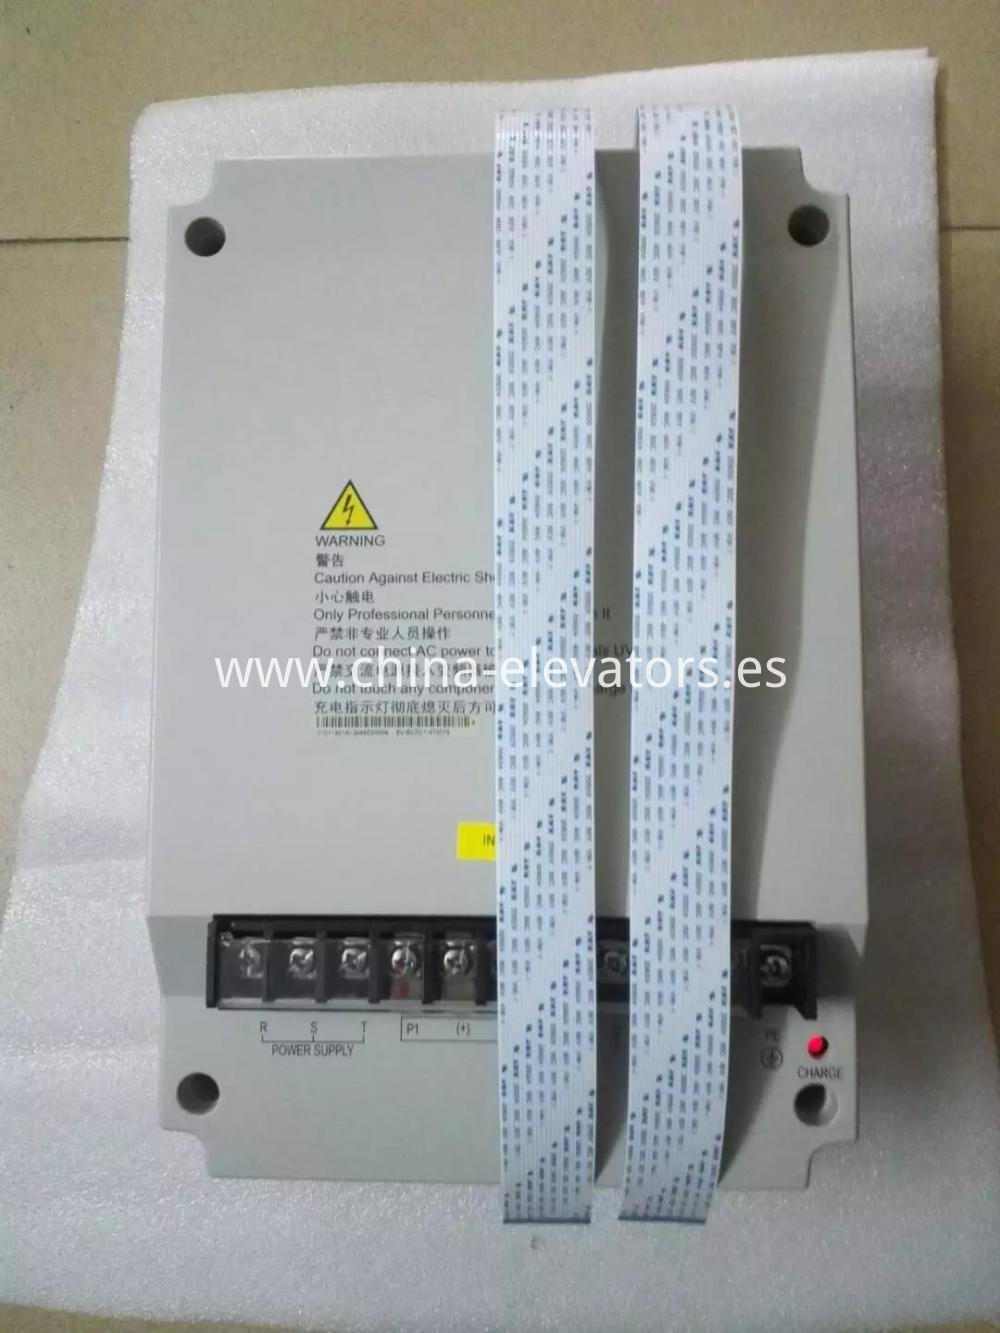 EMERSON Inverter for Hitachi Elevators